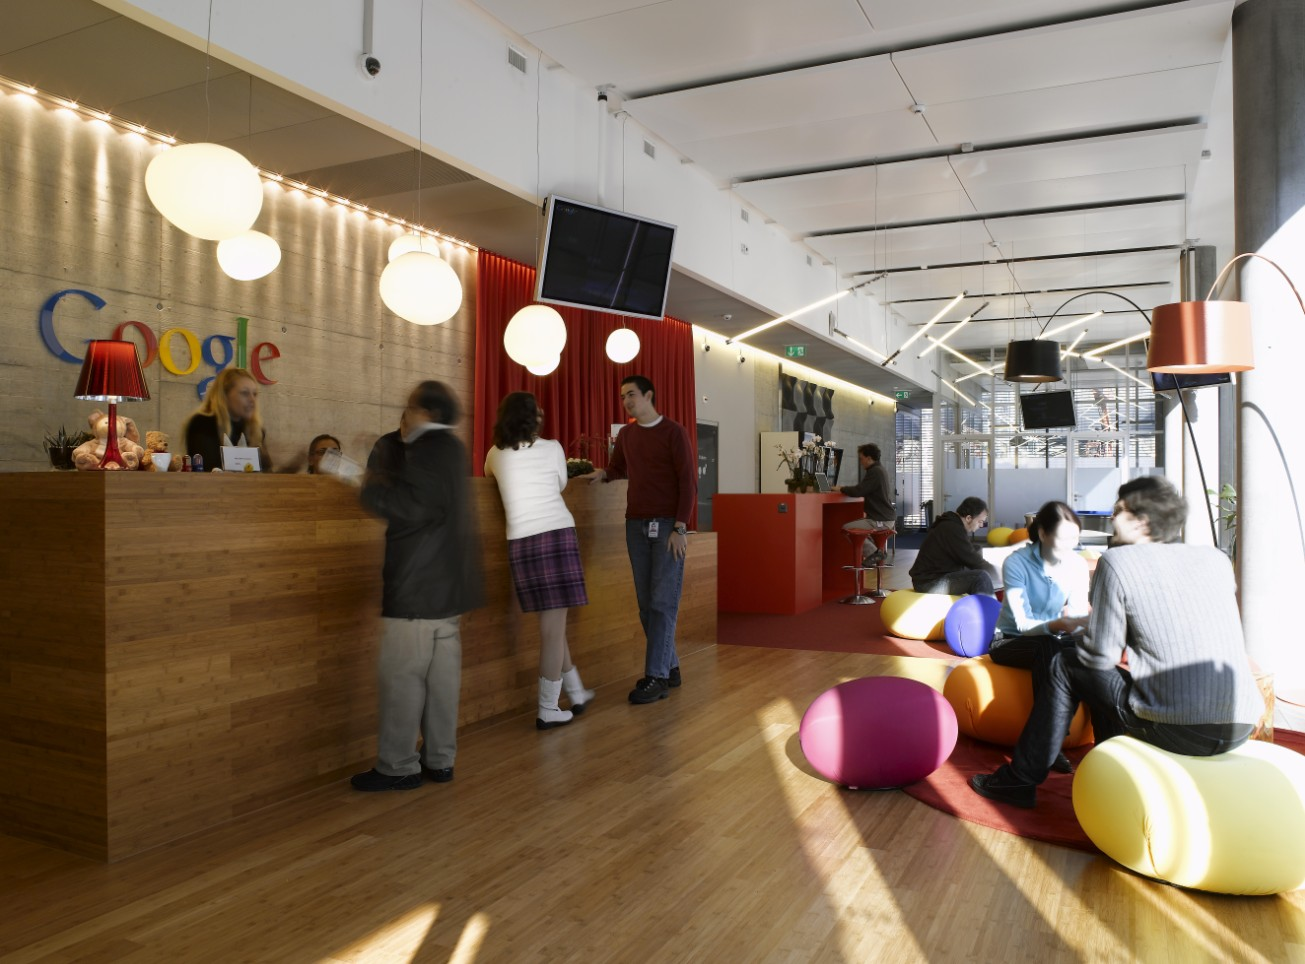 Google main lobby at one of their buildings and facilities